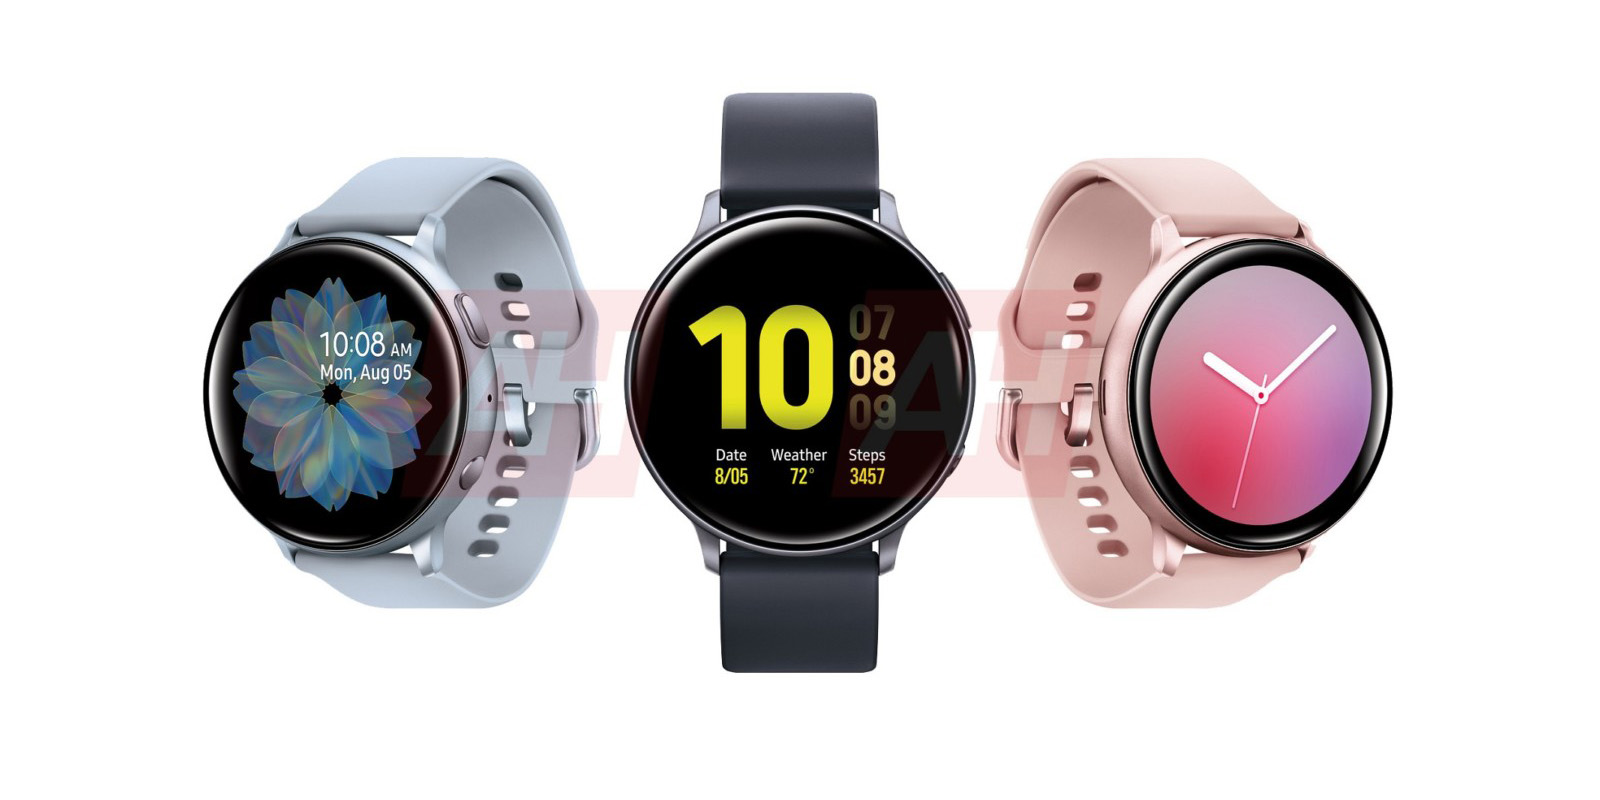 Samsung Galaxy Watch Active 2 - 9to5Google